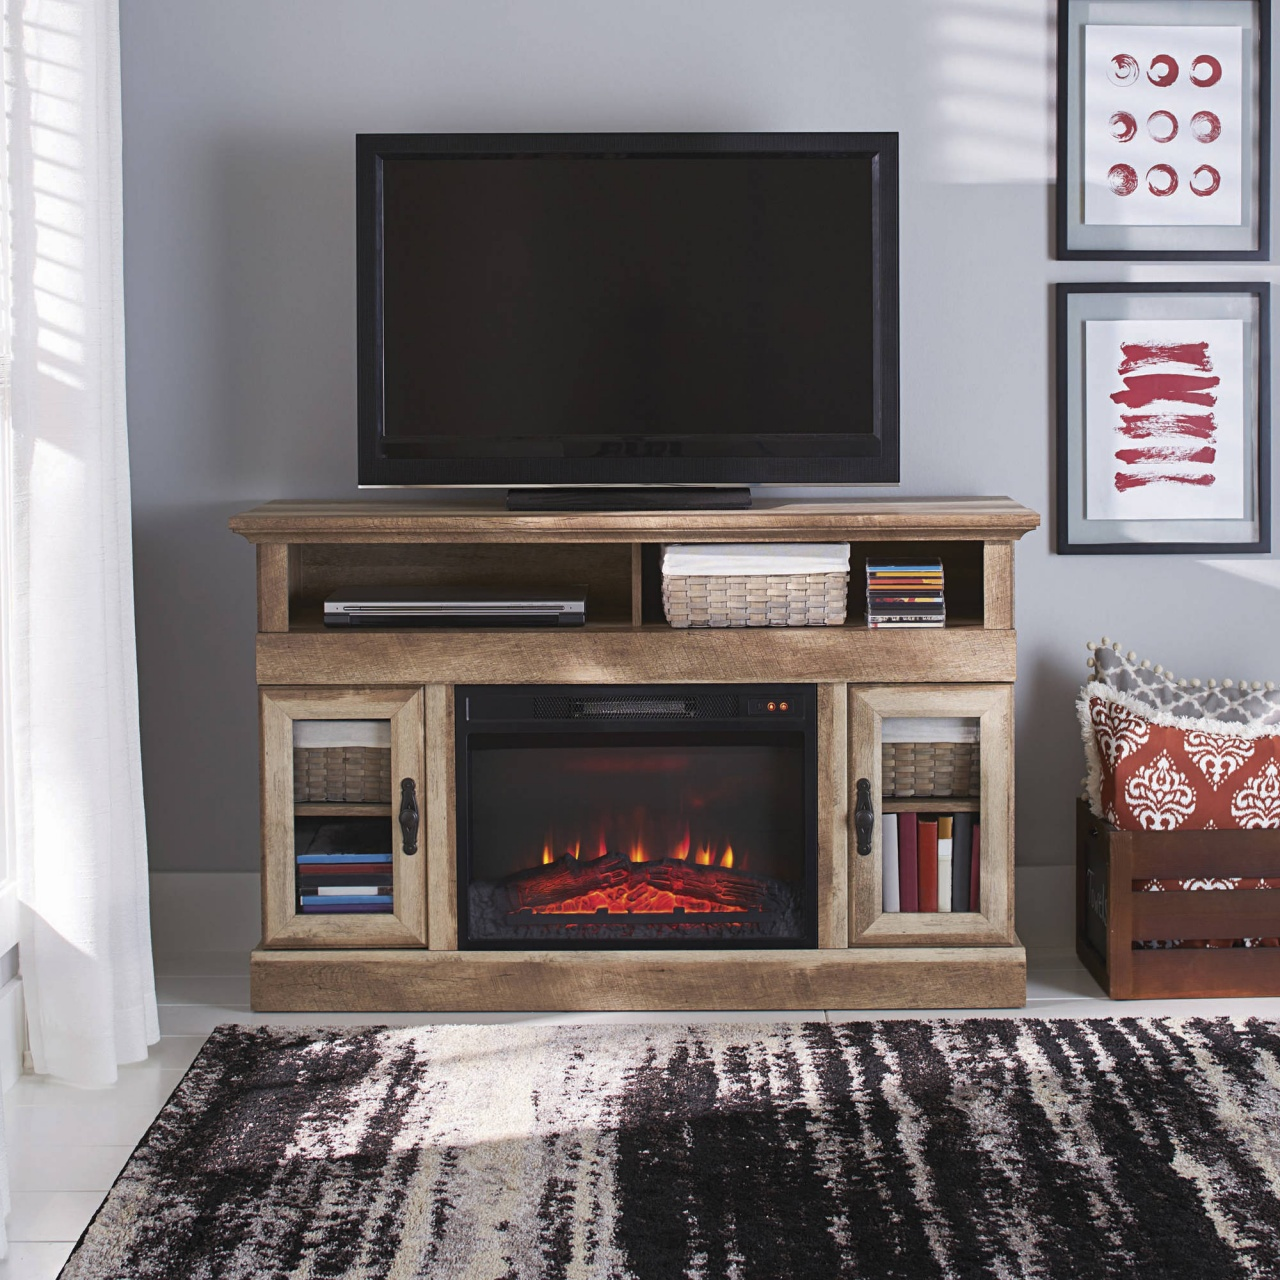 72 inch electric fireplace media console whalen media fireplace console for tvs up to 60quot brown ash from 72 inch electric fireplace media console